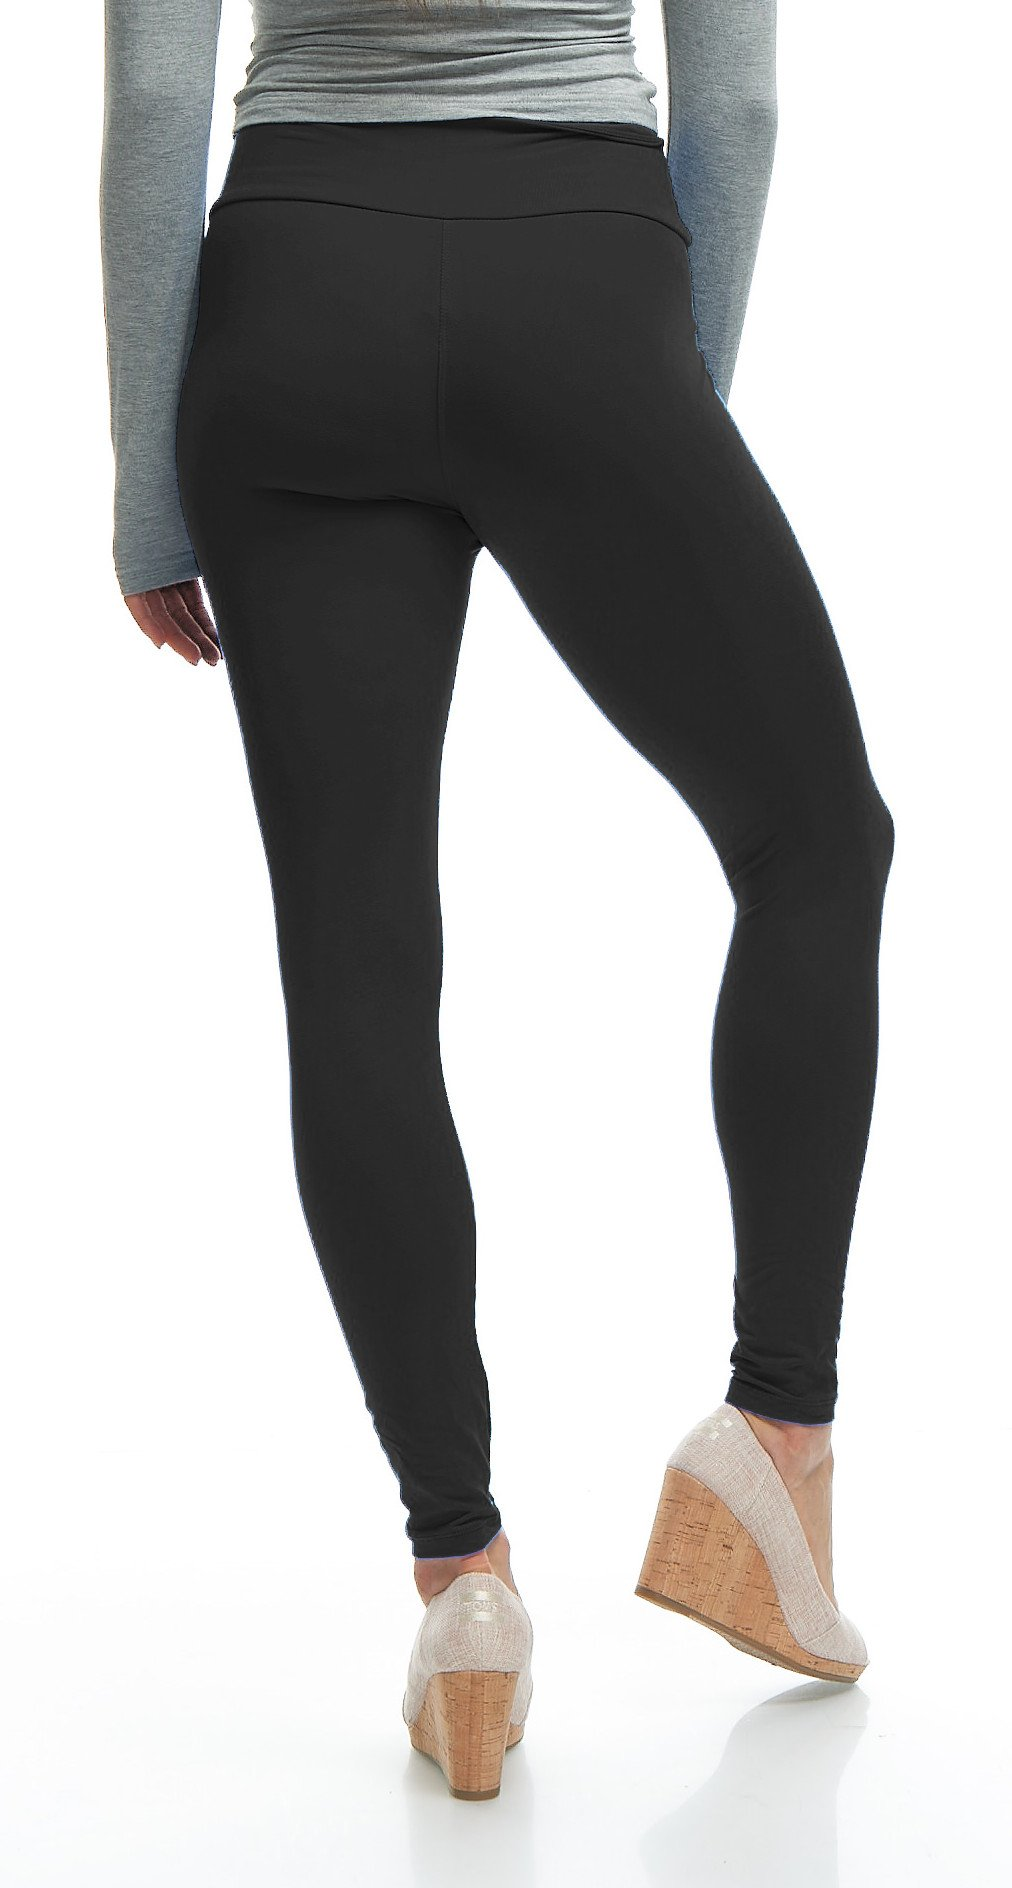 LMB Yoga Leggings Buttery Soft Material - Variety of Colors - Black by LMB (Image #7)